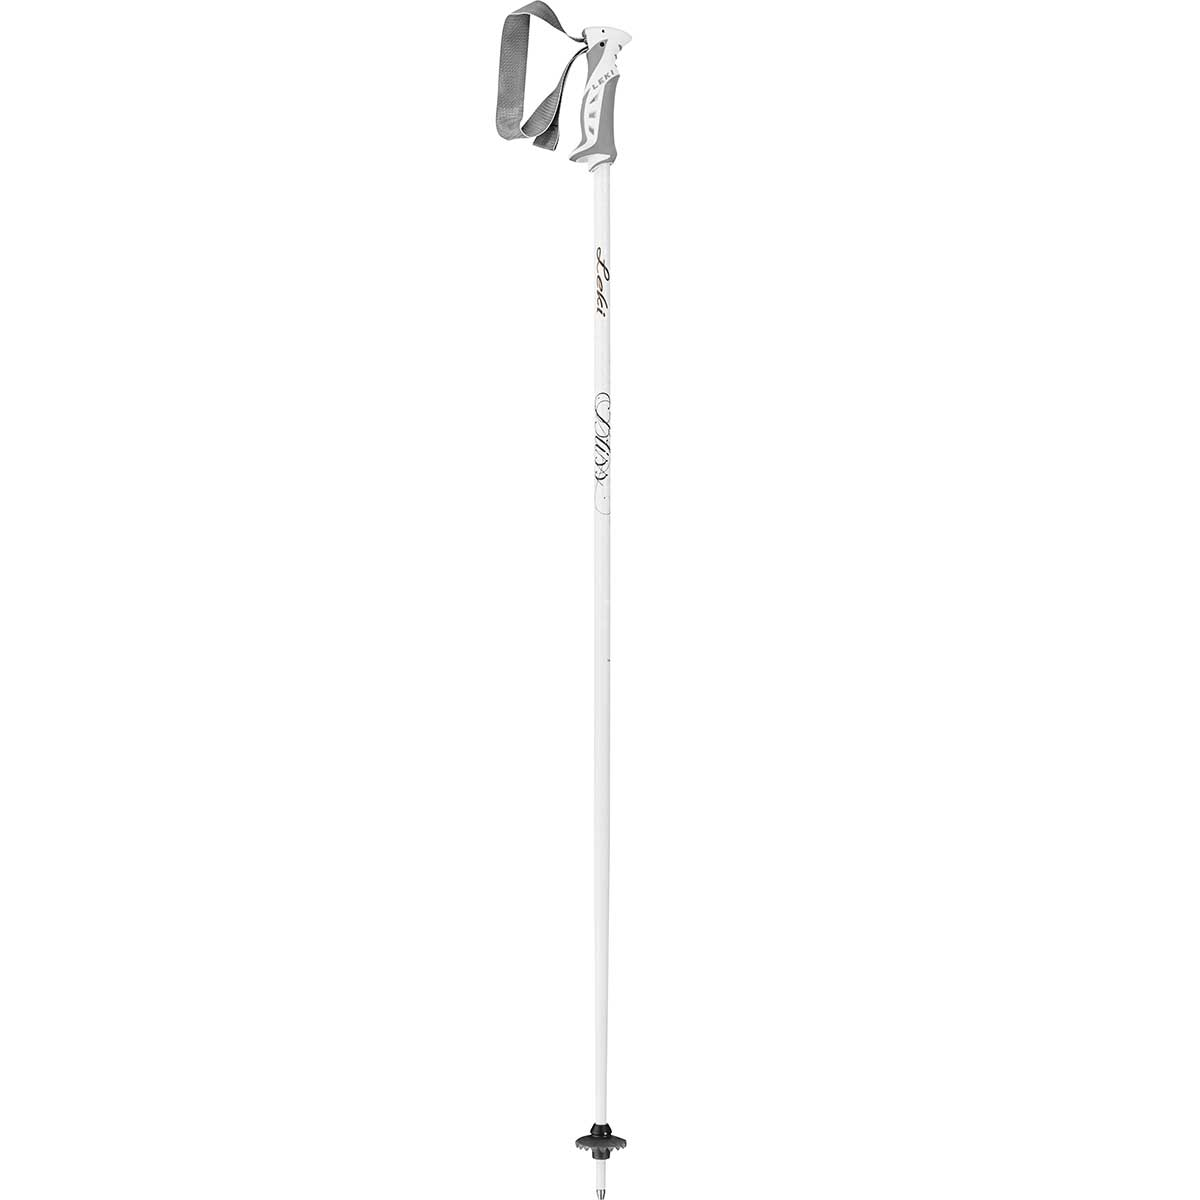 Leki Bliss women's ski pole in white and gold